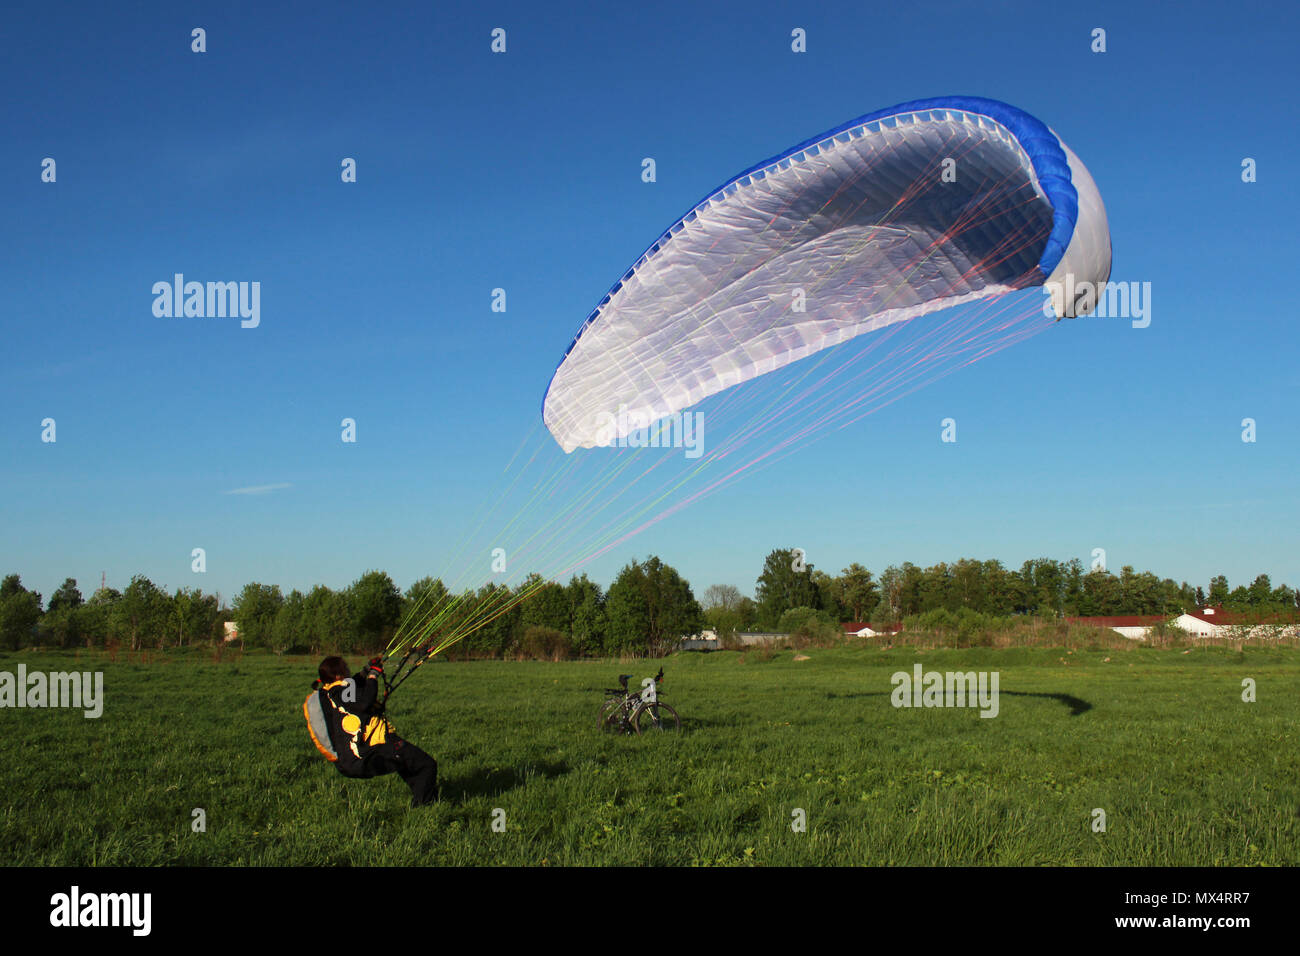 pilot newcomer paraglider is trained on the ground to lift up and hold the blue-white paraplane. Stock Photo